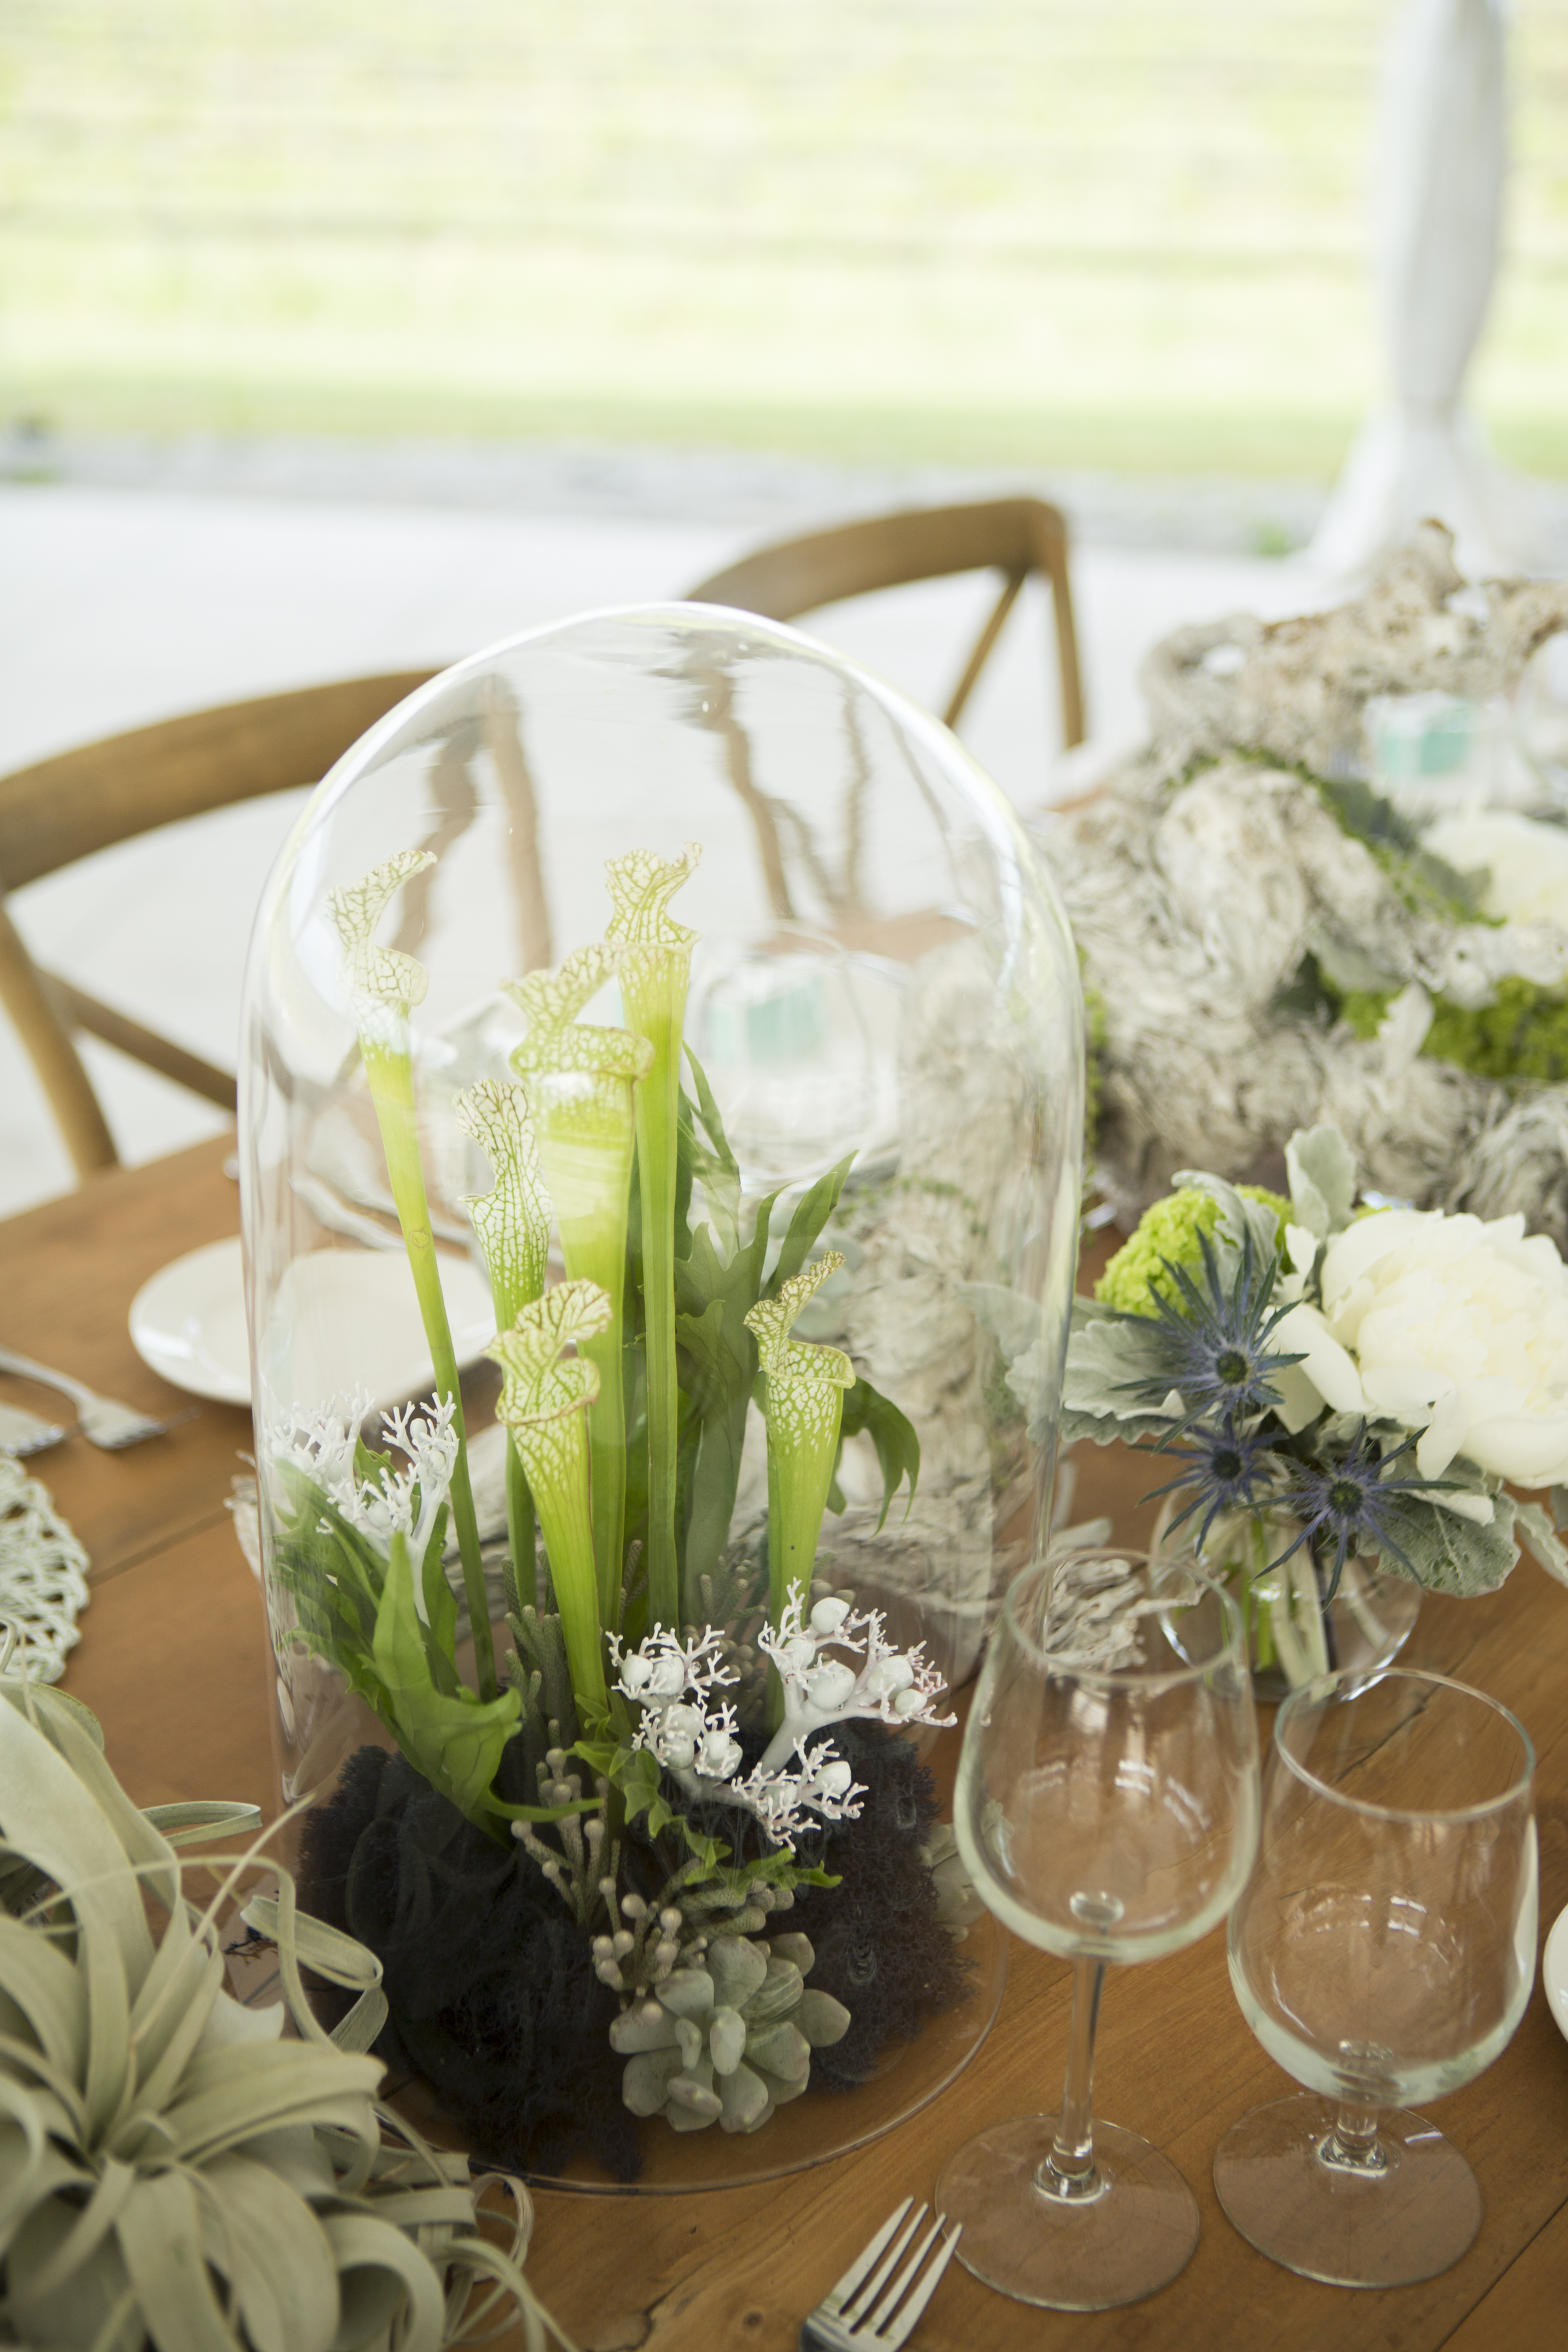 eva-derrick-photography-creative-nautical-preppy-photography-ravine-vineyard-niagara-on-the-lake-st-davids-dress-j.crew-rustic-wedding-lush-florals-savvy-sendables-candy-by-katie-sweet-celebrations-tapestry-beadwork-the-warehouse-event-staging-design-stationary-florals-flowers-bouquet-hair-makeup-lisa-gartner-jewellery-candy-table-candy-buffet-photo.jpg